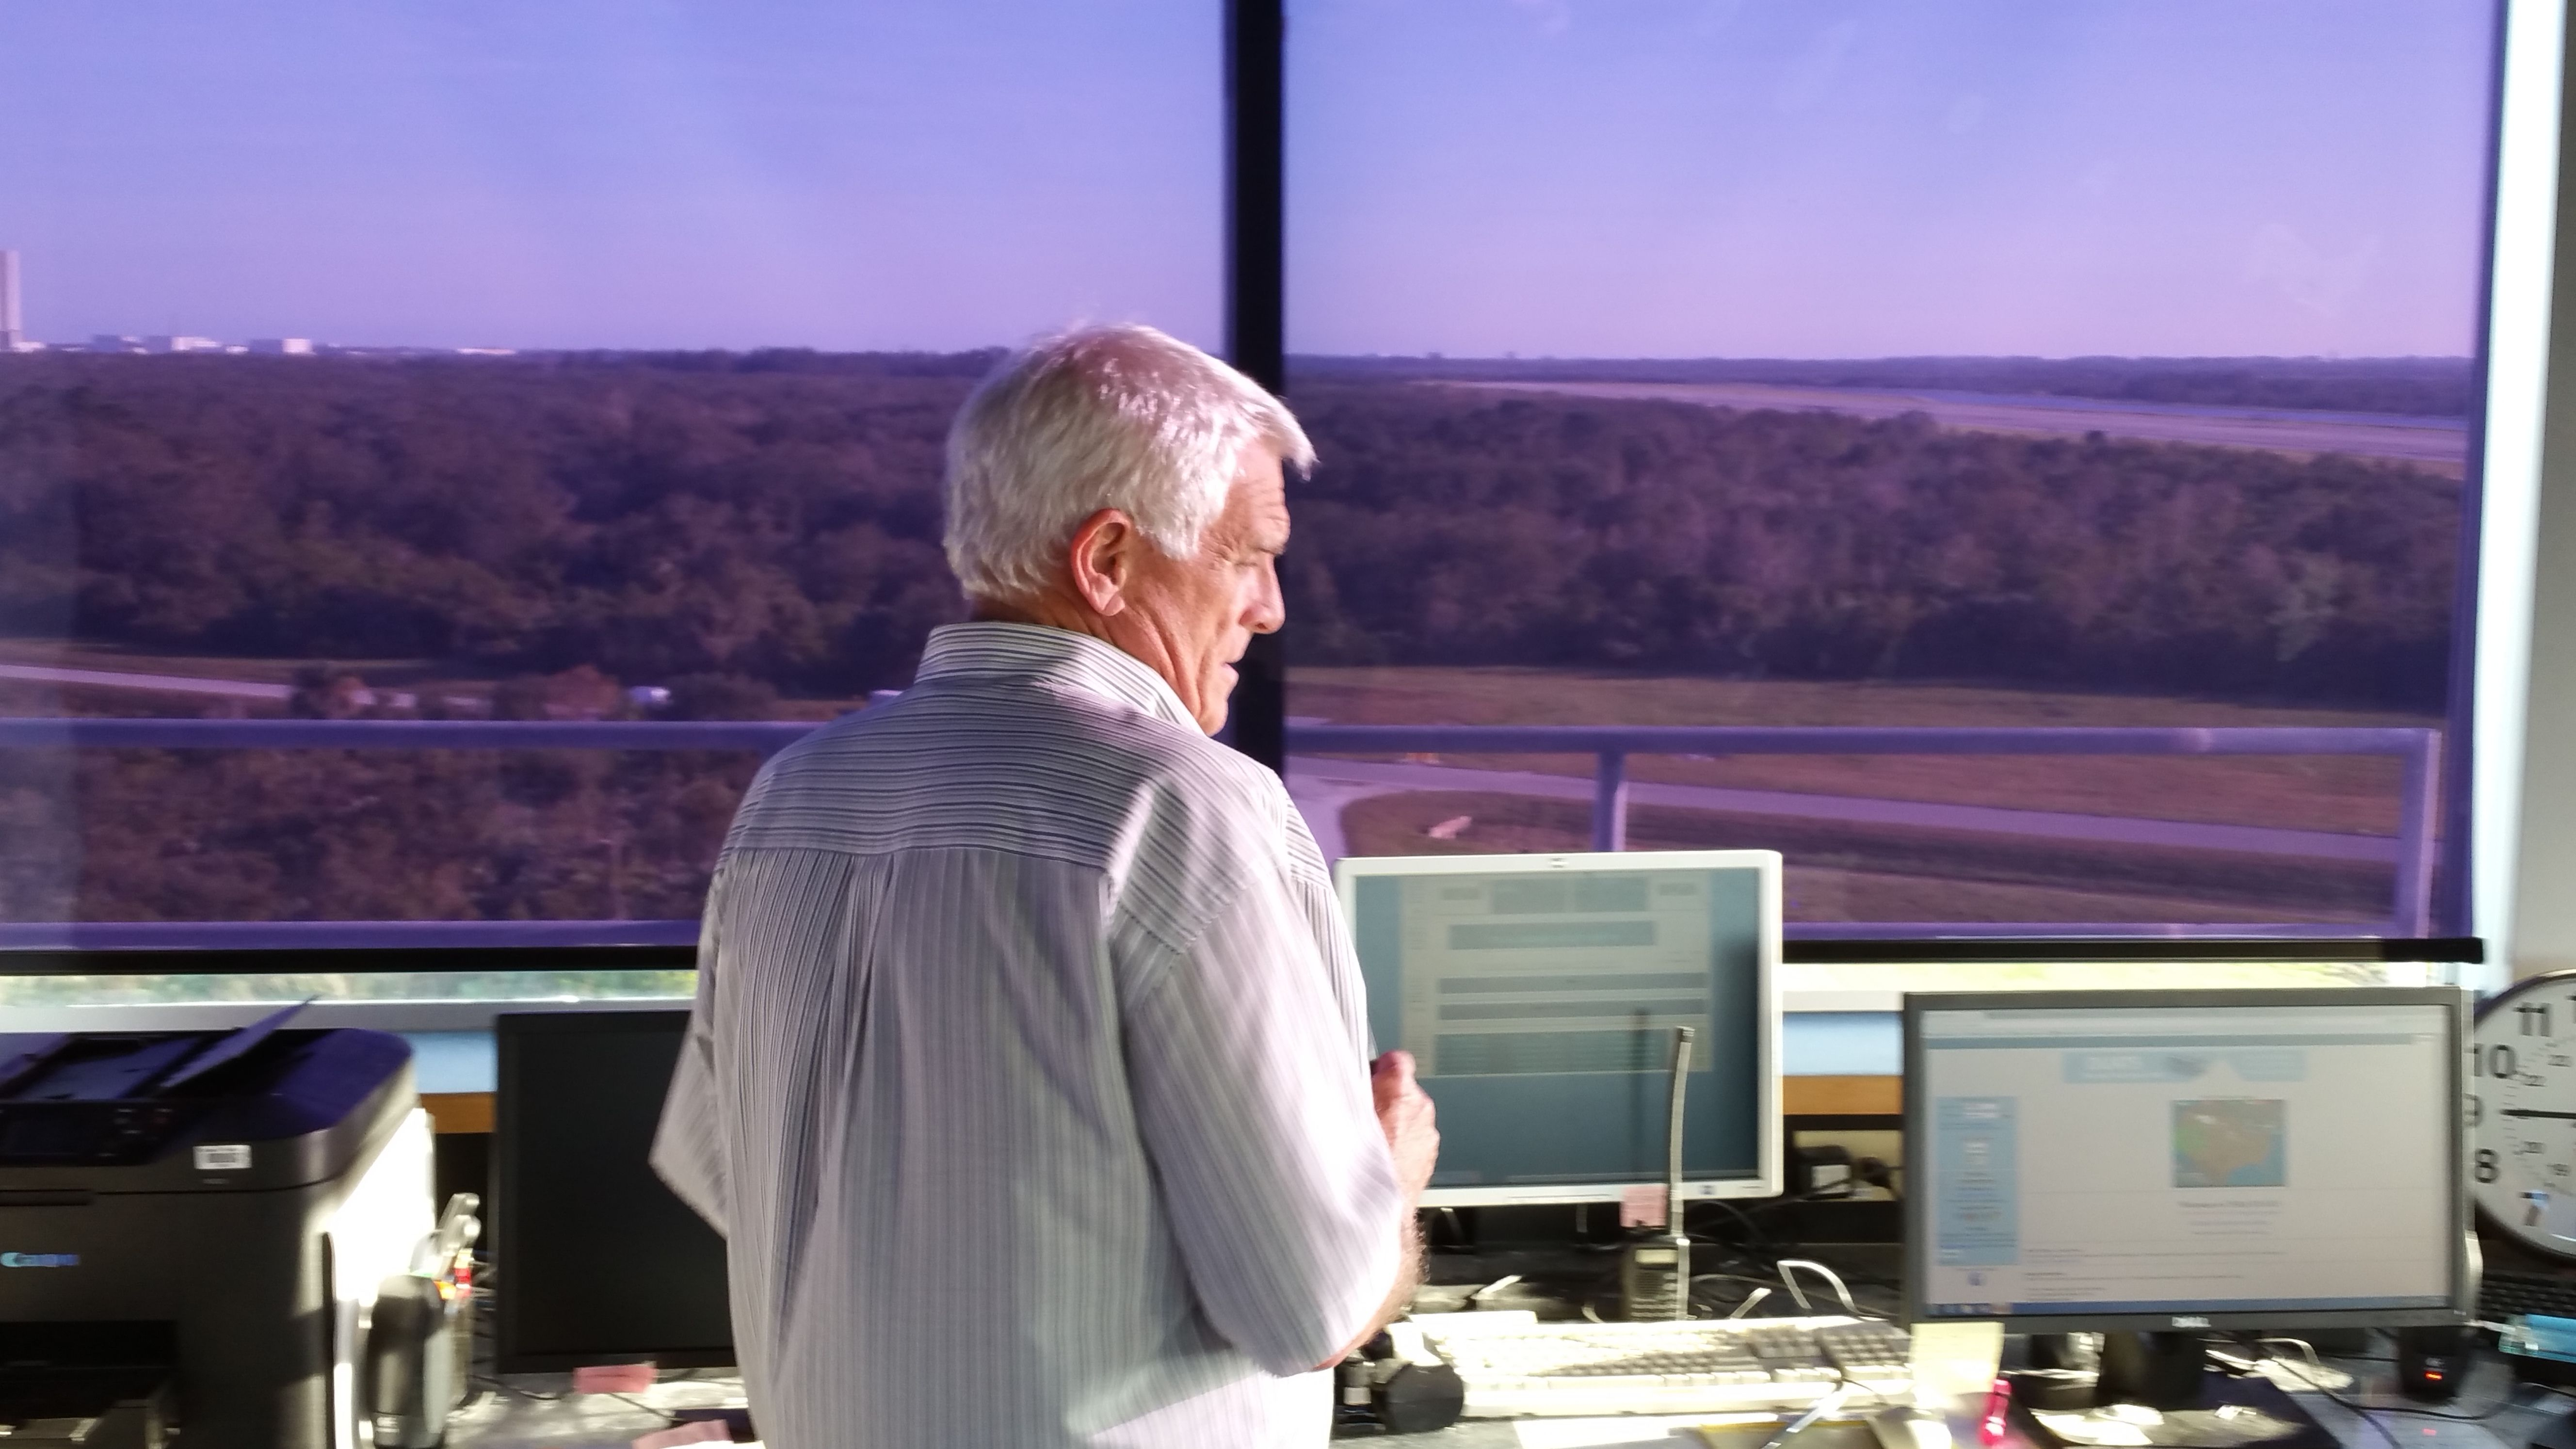 <p><span>For more than three decades, Kenneth Hooks has seen Cape Canaveral from his perch inside the nation's most unusual air traffic control tower. The tower controls access to the Shuttle Landing Facility, a 15,000-foot long runway that hosted shuttle touchdowns until the program ended in 2011.</span></p> <p>This runway is a symbol of where spaceflight has been. Now it's becoming<span>a key hub of the future. Since 2015 the runway, tower, and other pieces have been operated by Space Florida, the state's spaceport development authority seeking to boost commercial business ventures. And this place is a key part of the return ofhuman spaceflight, too.</span></p>